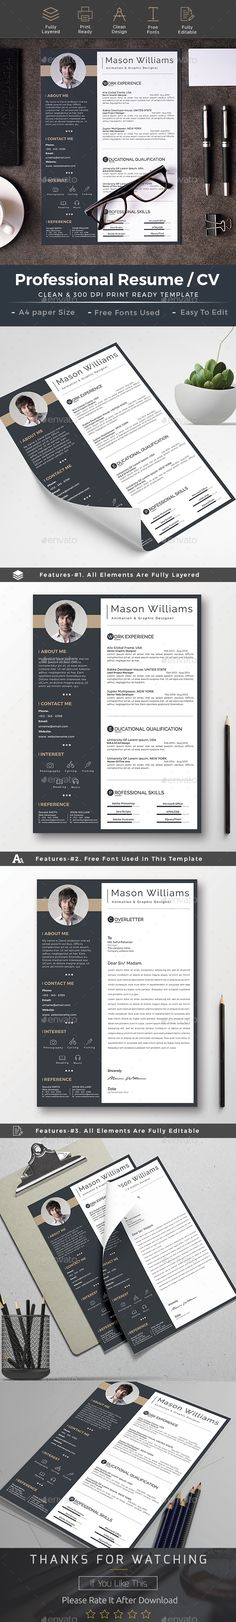 Resume CV Resume cv, Cv template and Simple resume - professional resume paper